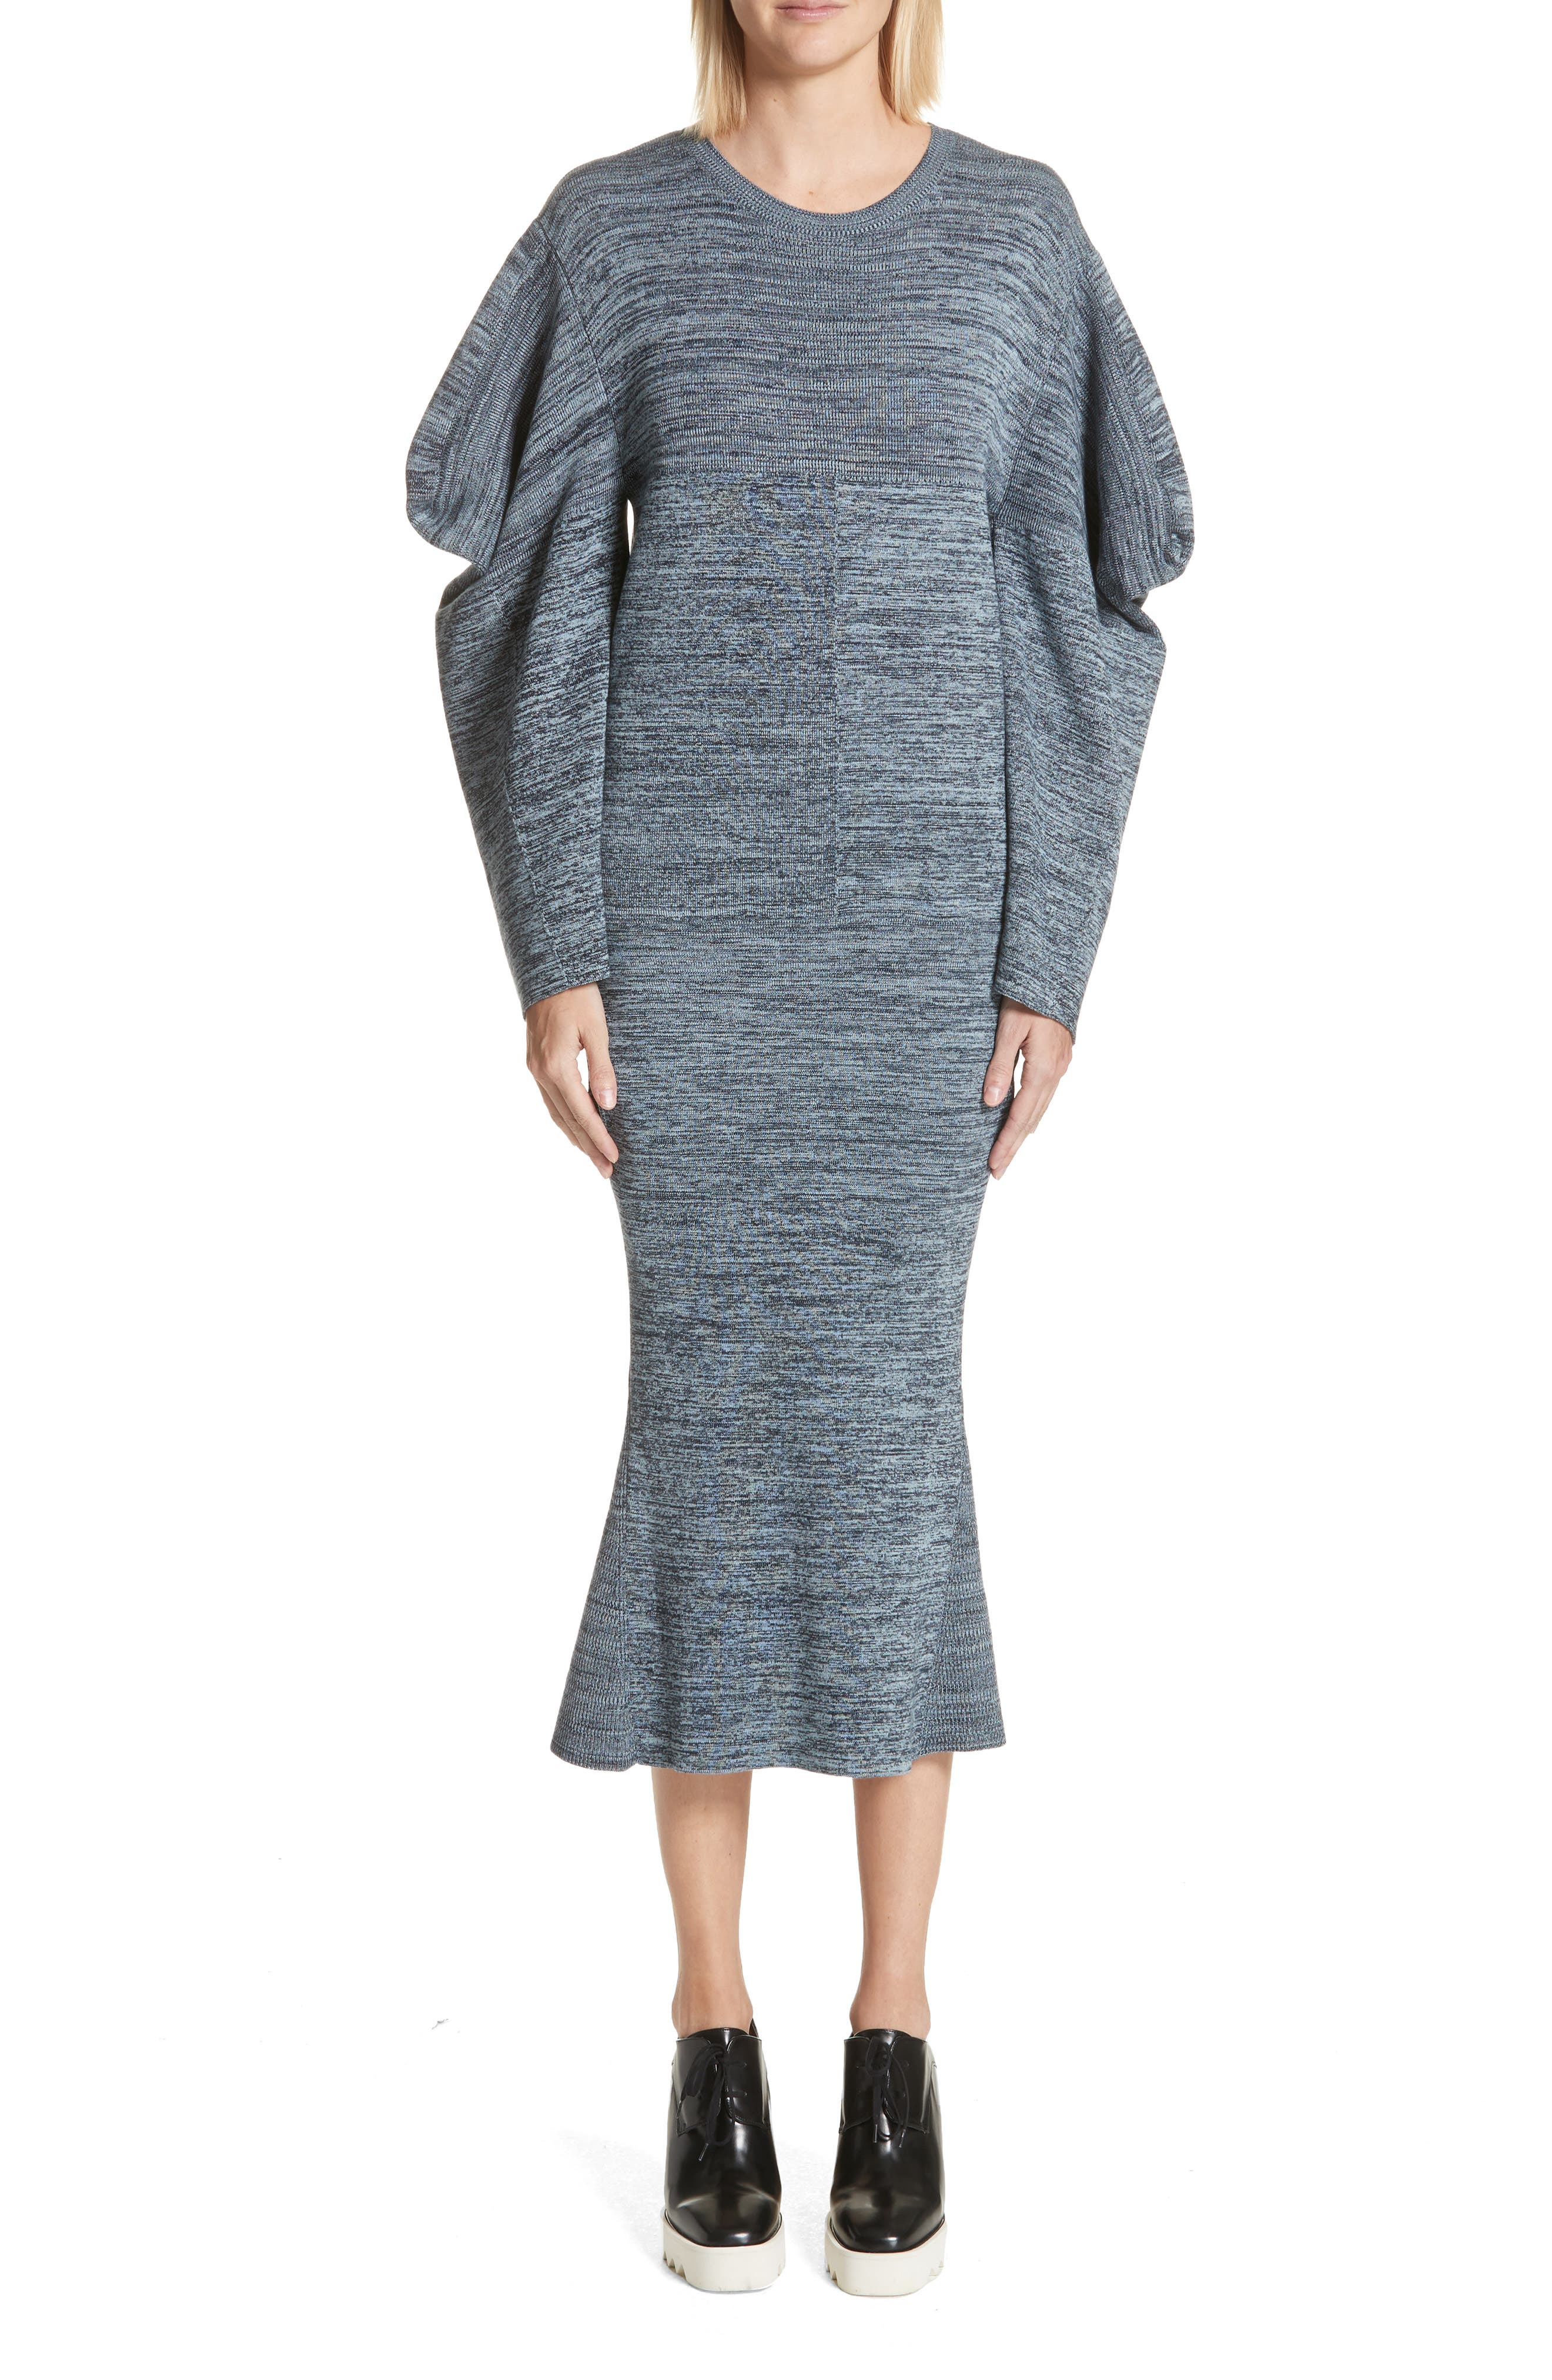 Stella McCartney Puff Sleeve Cotton Mouliné Dress